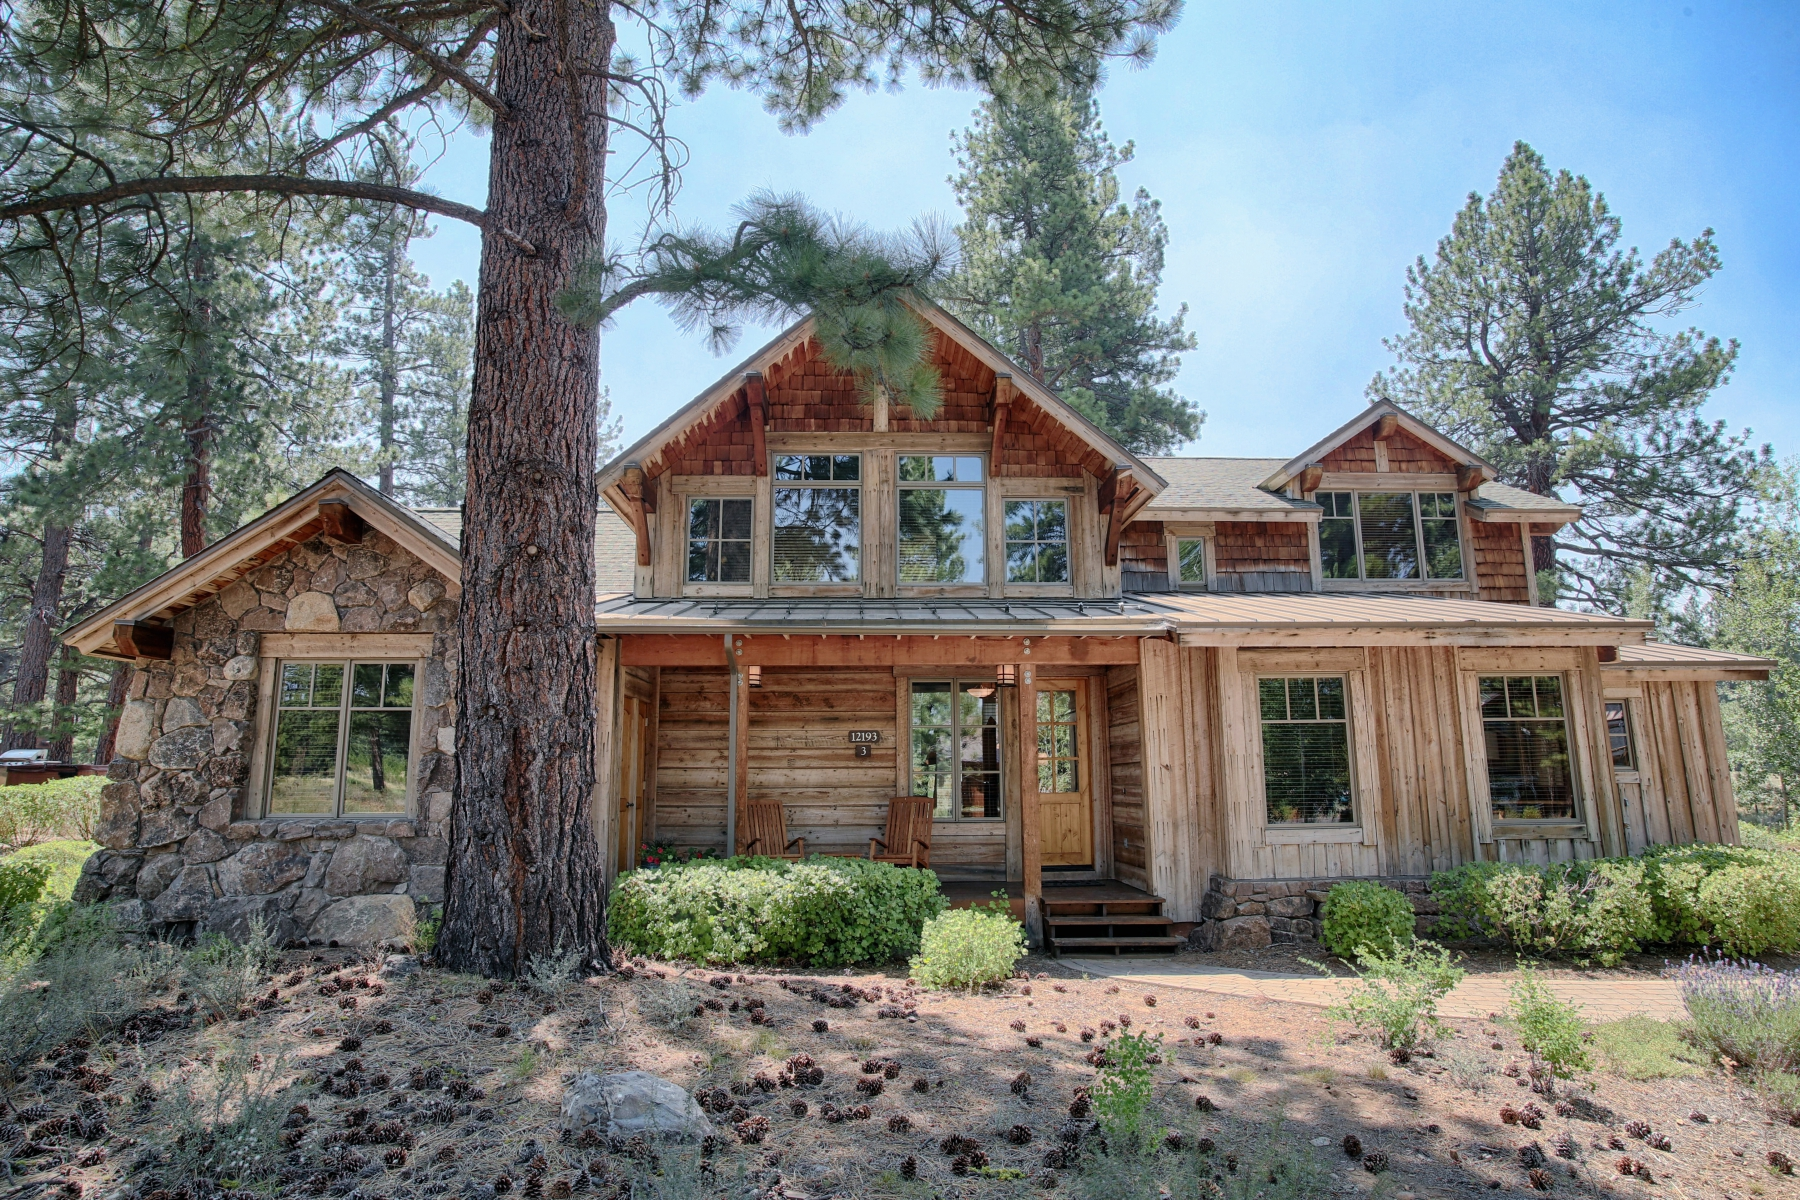 Single Family Home for Active at 12662 Lookout Loop, Truckee, California 96161 12662 Lookout Loop F44-7 Truckee, California 96161 United States